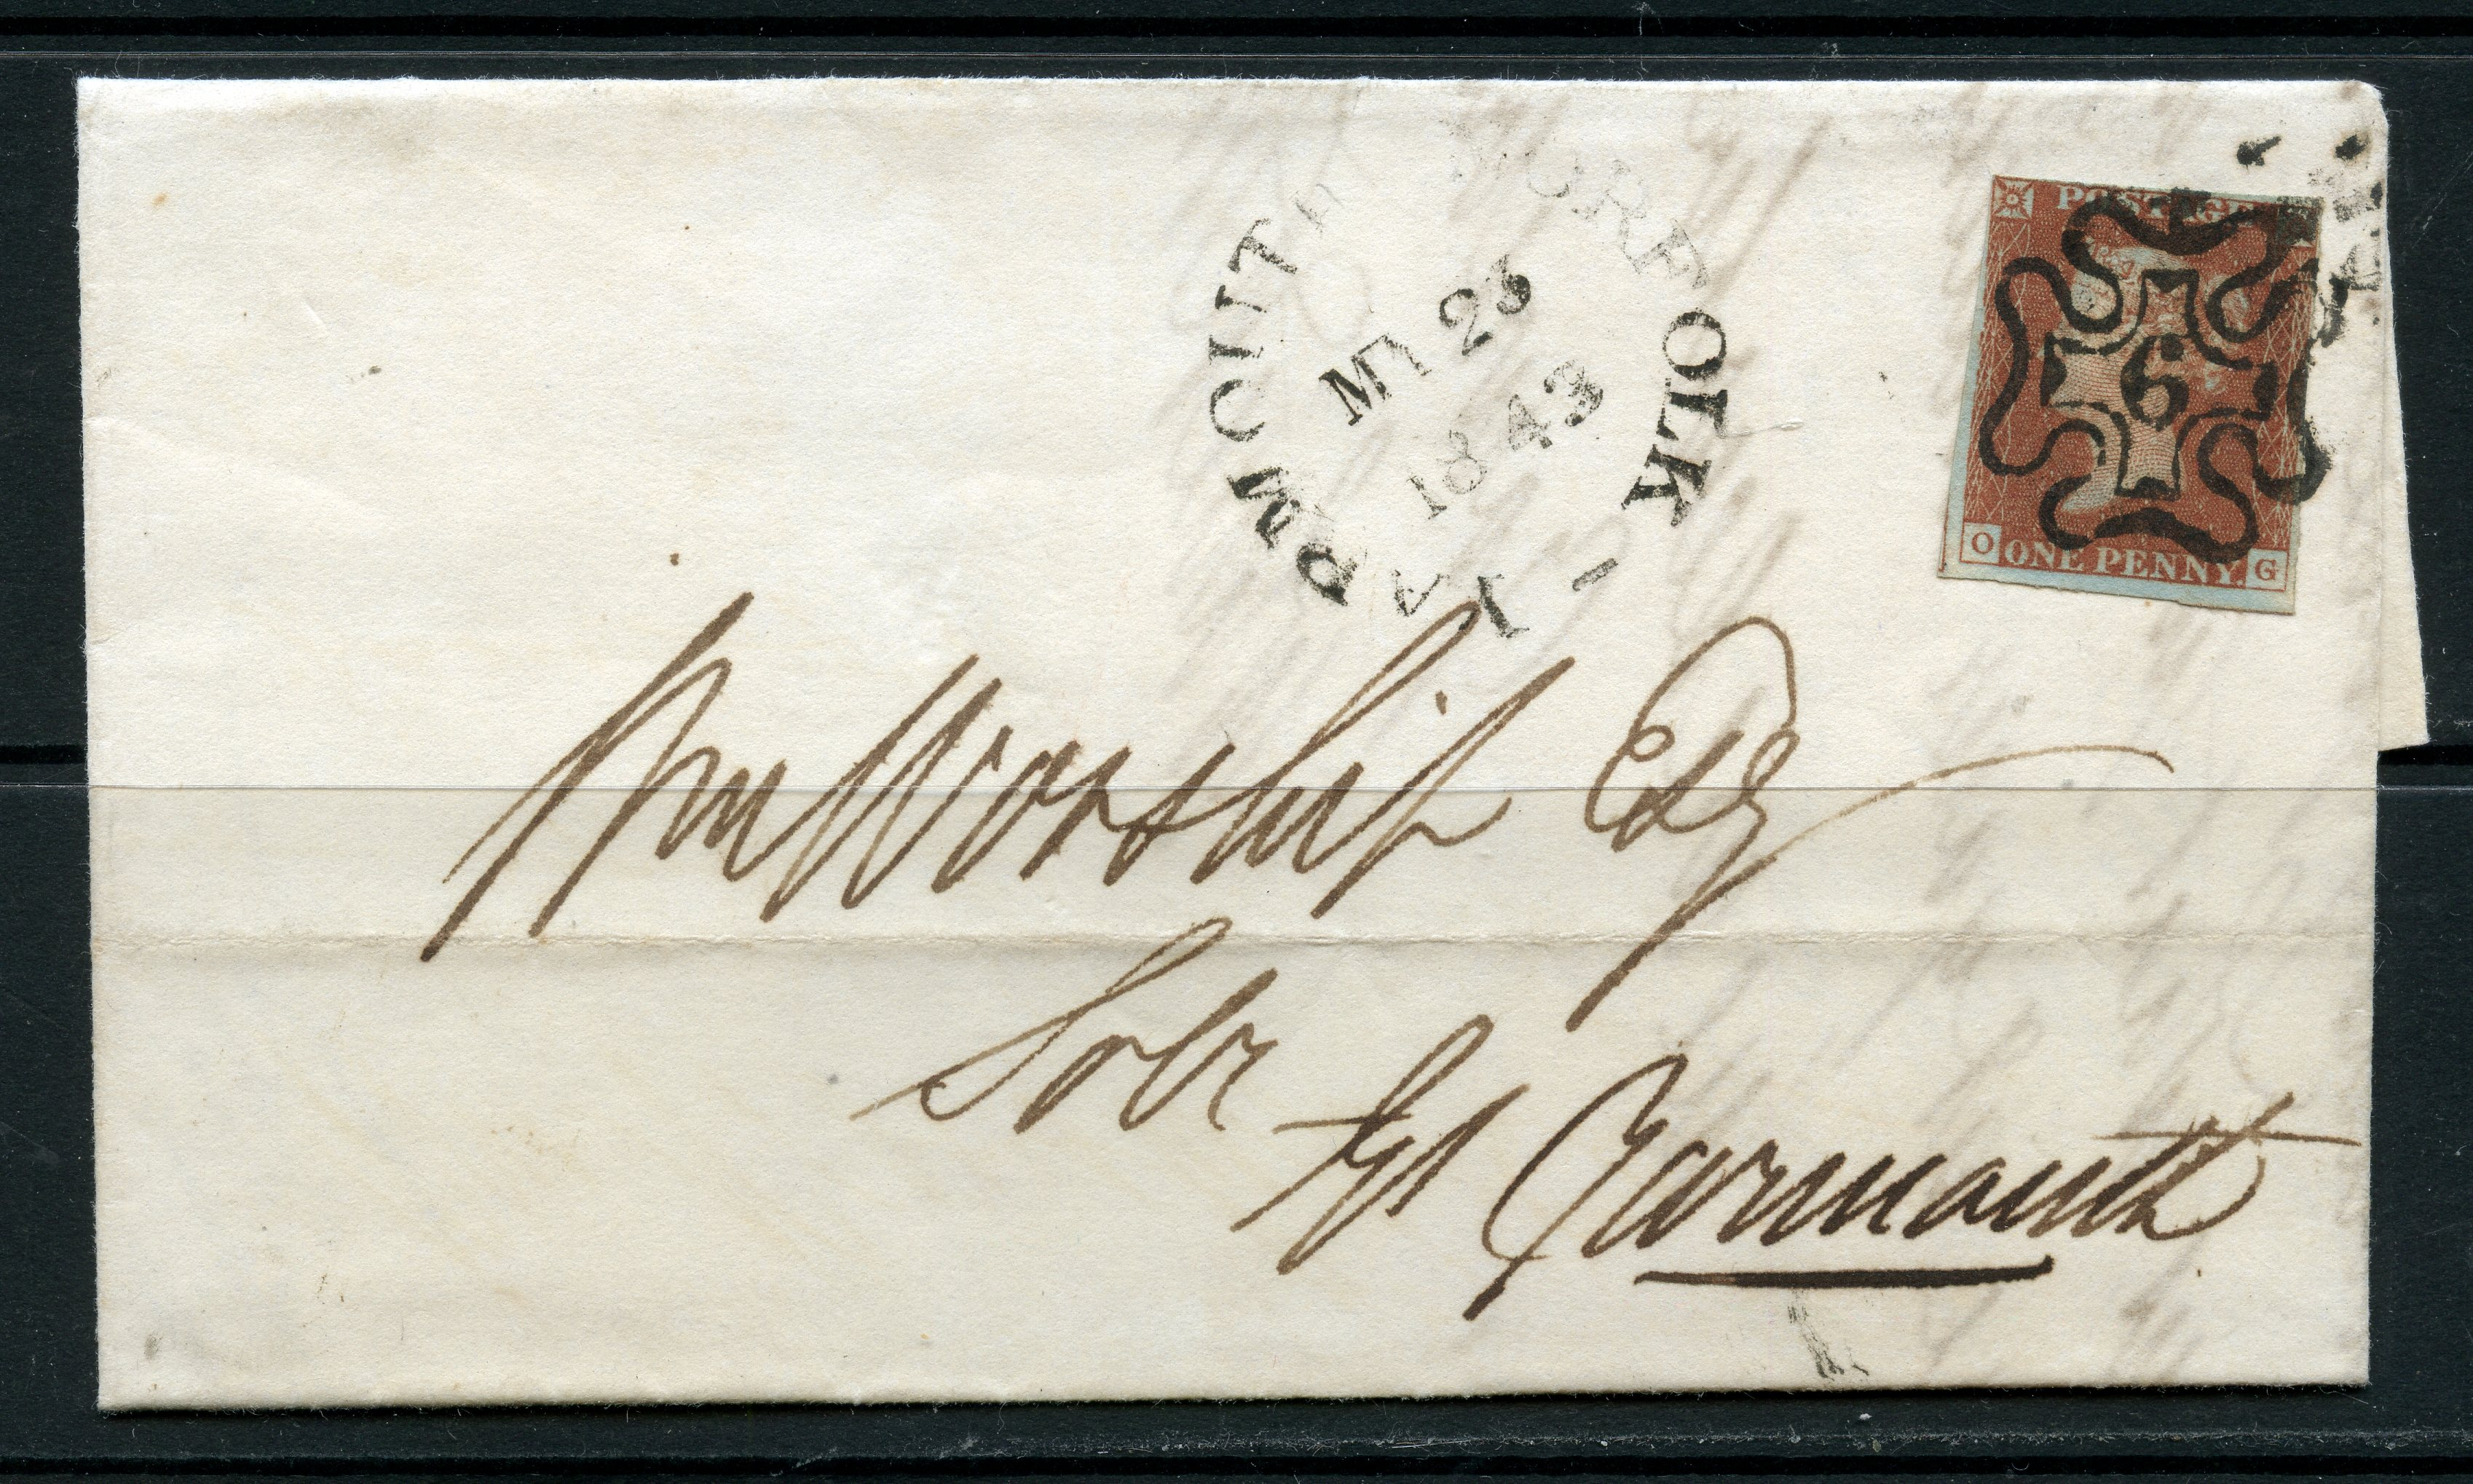 POSTAL HISTORY 1843 London to Great Yarmouth entire franked with a 1d red imperf 4 margin tied